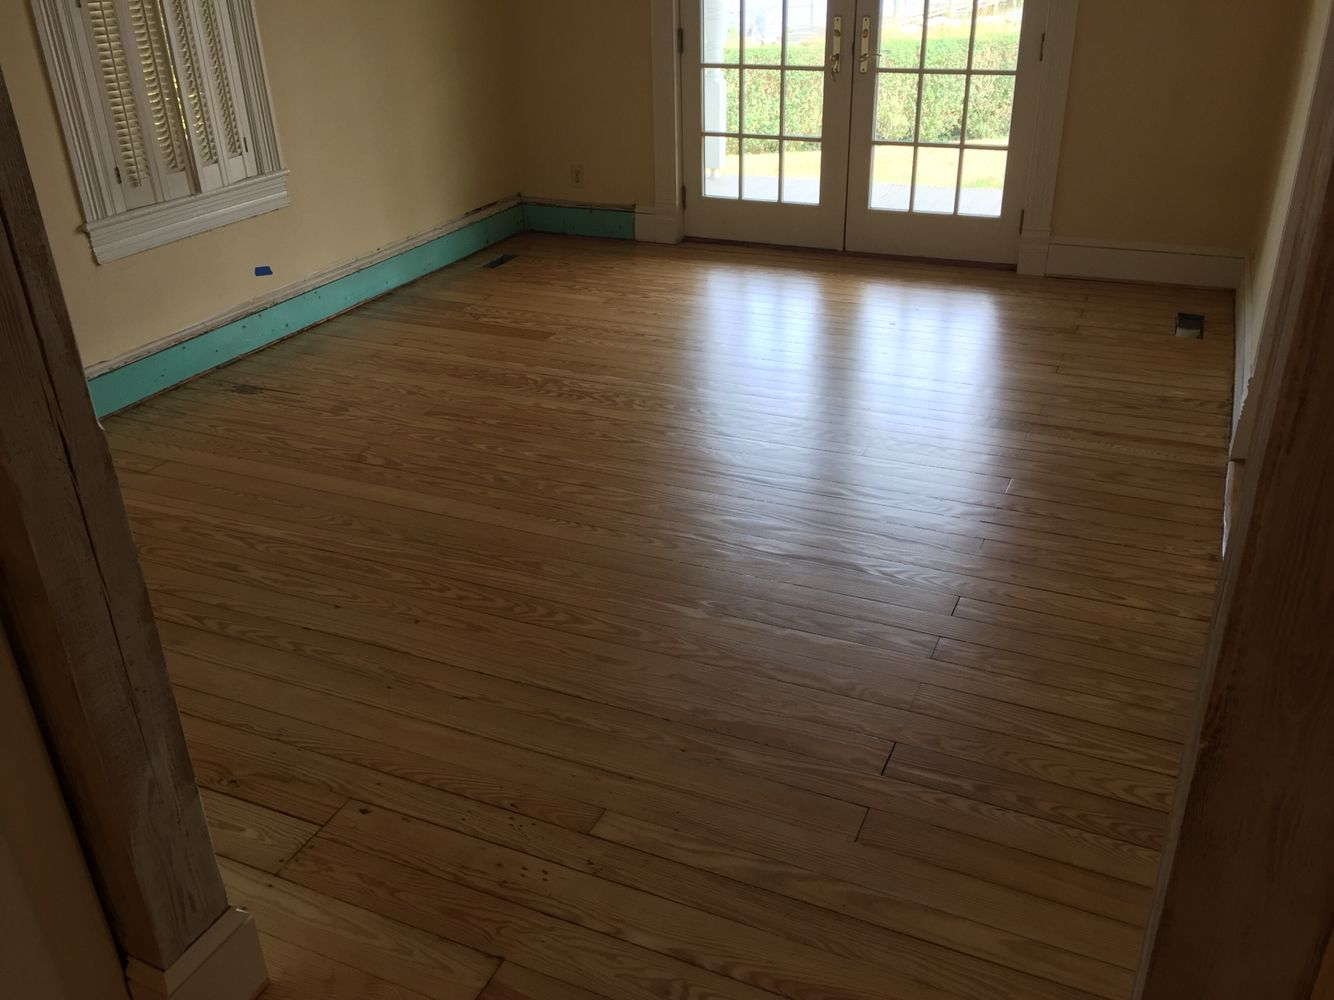 100y old pine floors refinished with coat of Pallmann x325